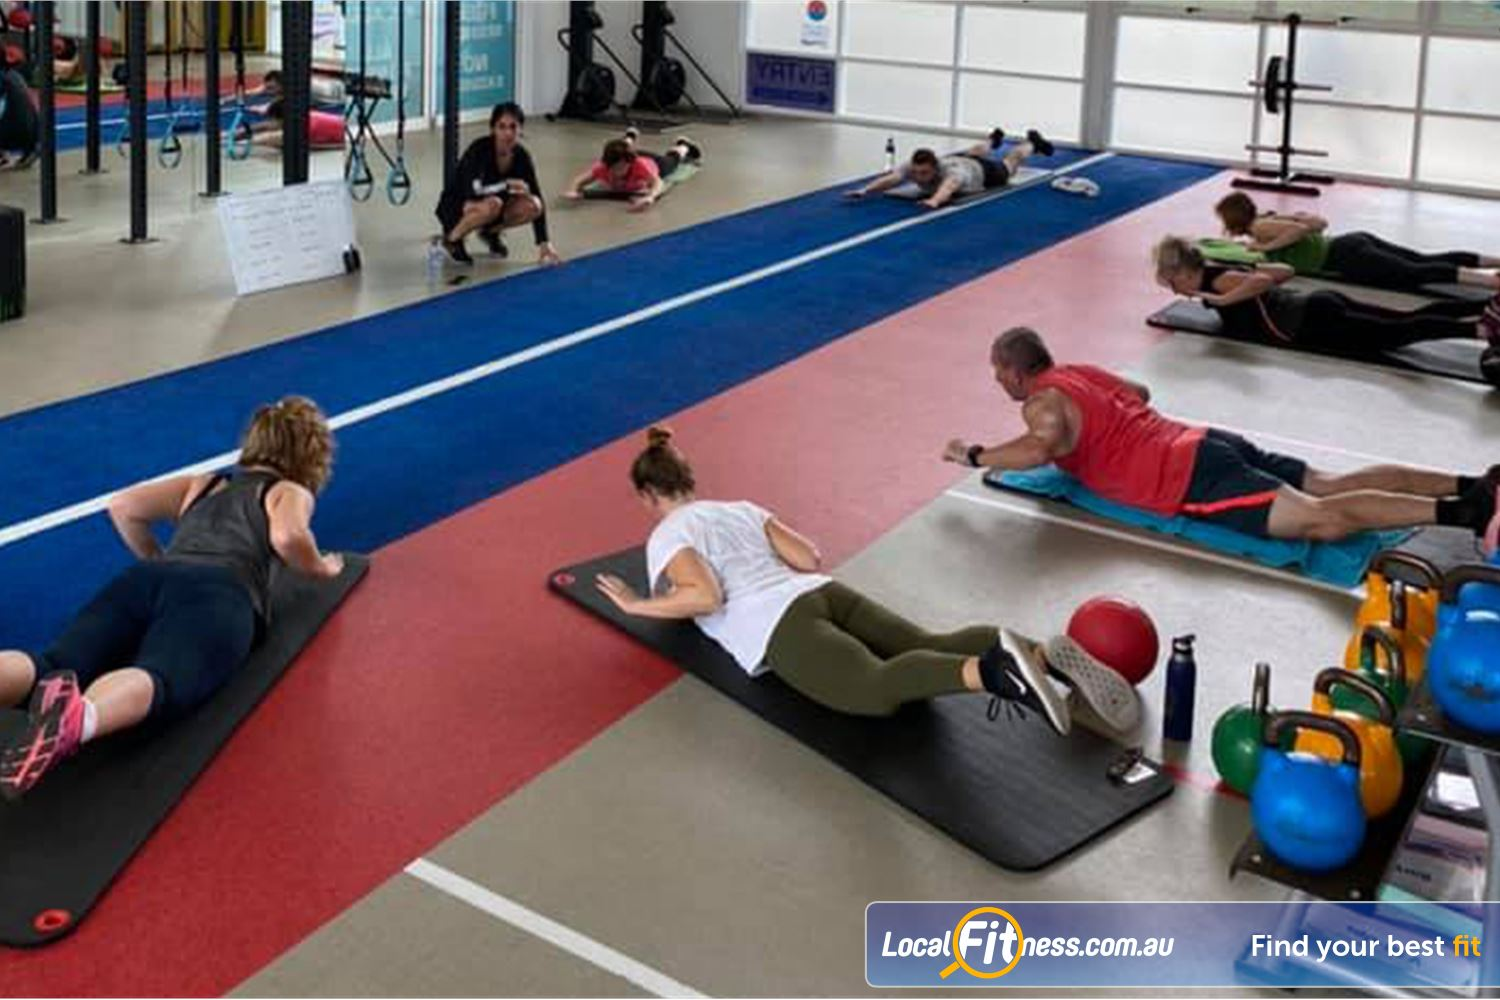 North Ryde Fitness & Aquatic Near Marsfield Our North Ryde gym classes will challenge your fitness.